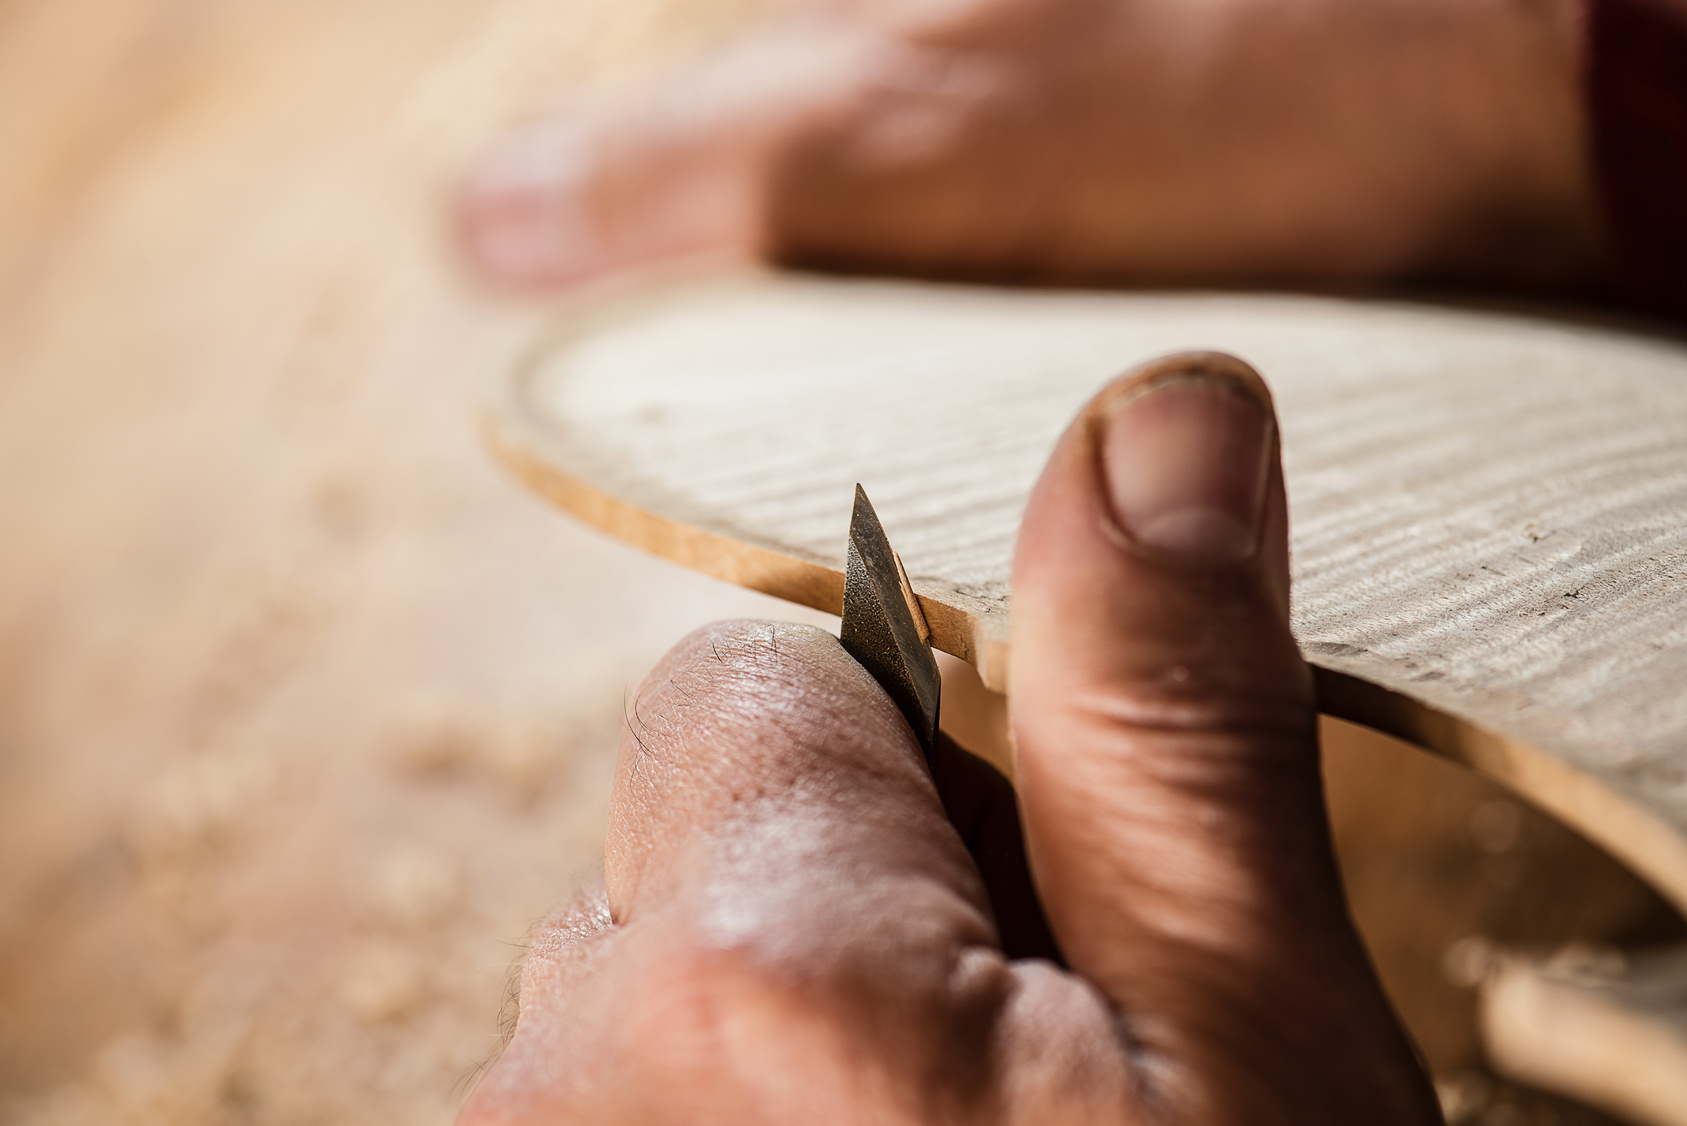 The Best Wood for Carving, Whittling, and Chipping